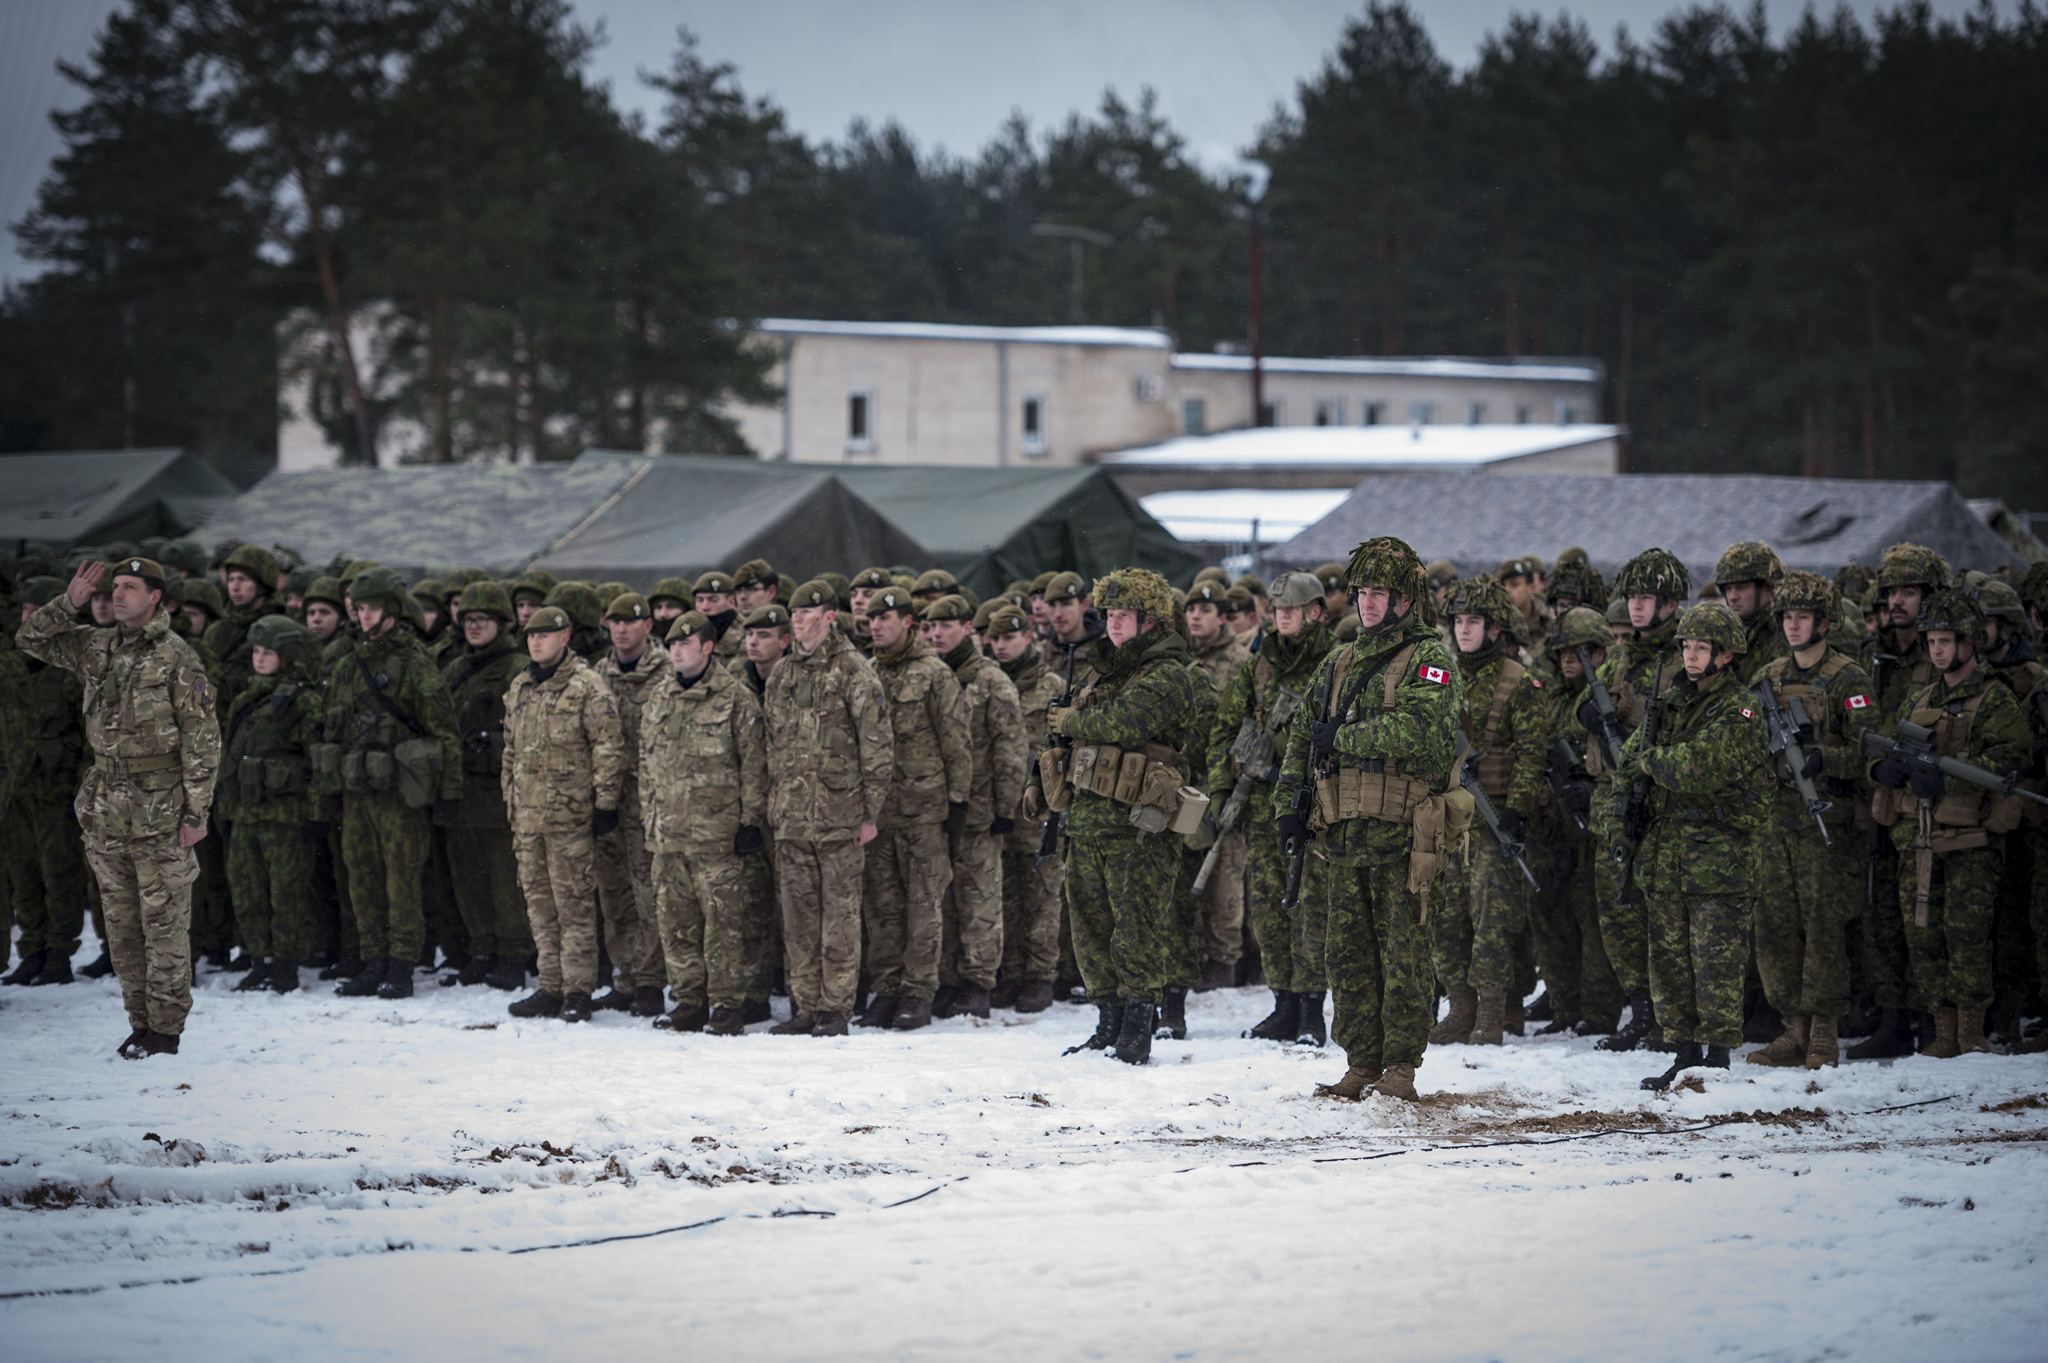 Members of the Land Task Force Rotation 6 stand on parade for the closing ceremony of Exercise IRON SWORD in Silvestras Zukauskas Pabrade training area, Lithuania, during Operation REASSURANCE on December 2, 2016. (Photo: Corporal Jay Ekin, Operation REASSURANCE Land Task Force Imagery Technician)